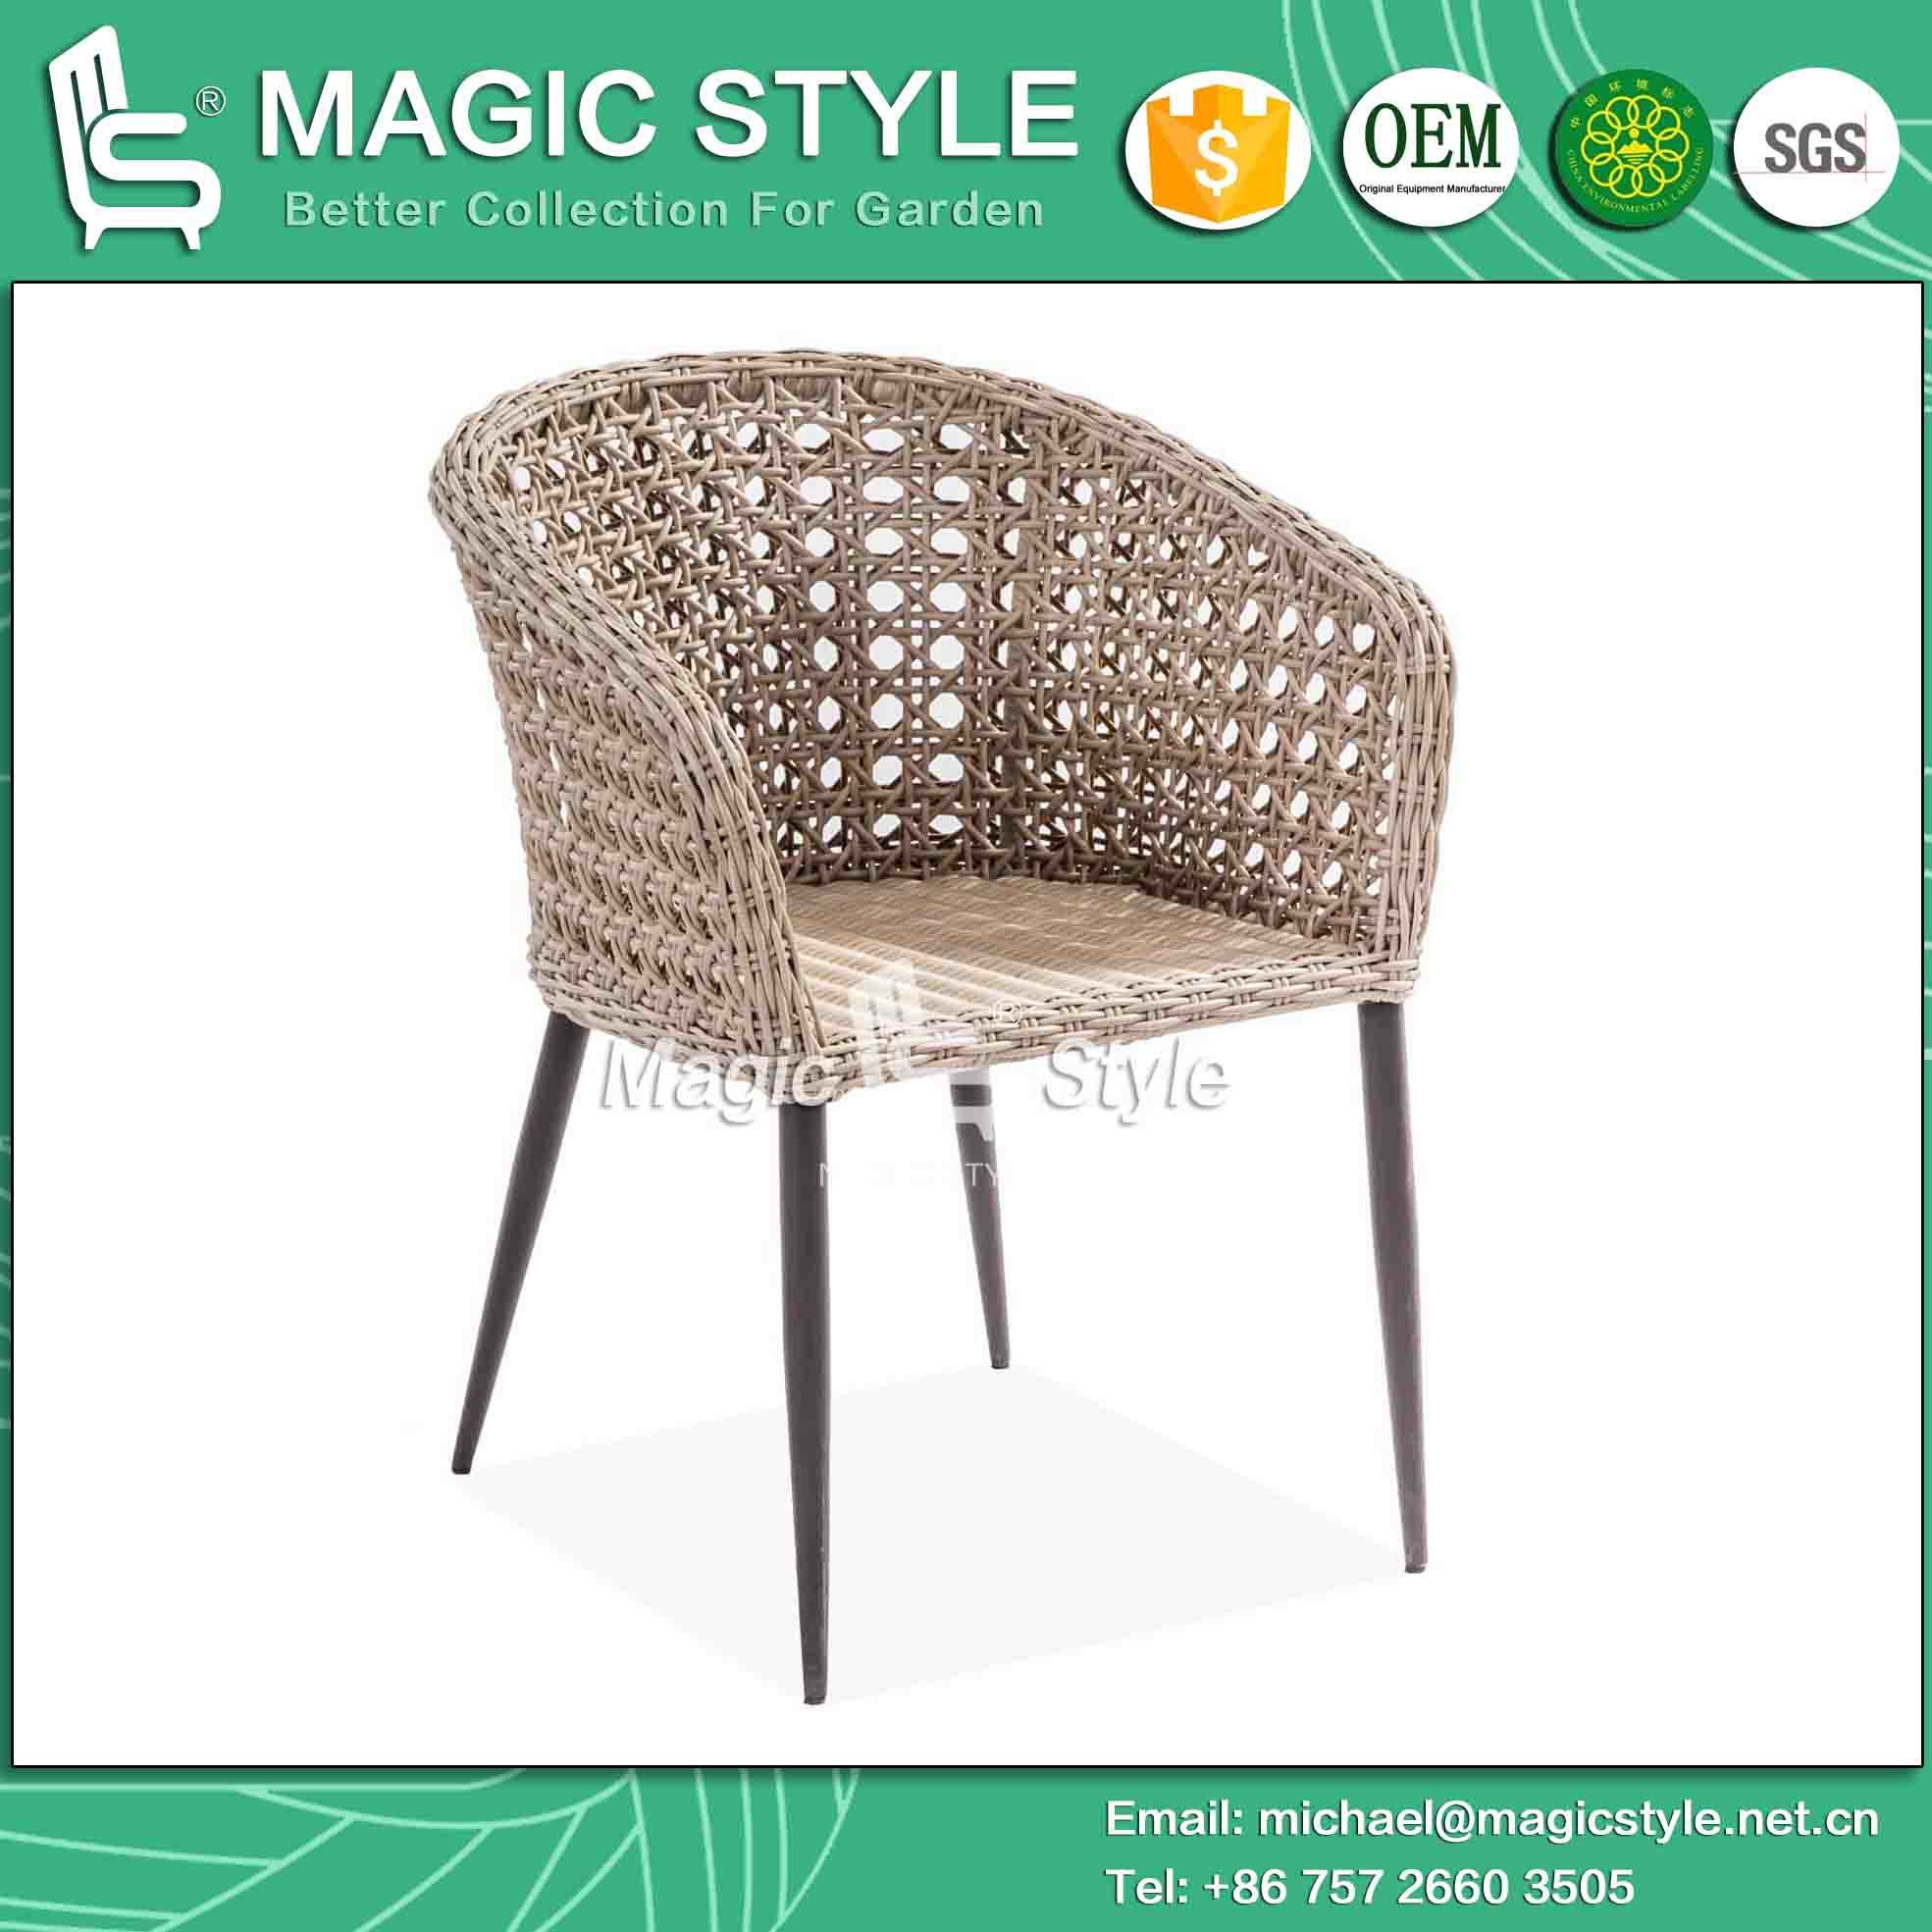 Patio Chair New Design Chair Coffee Chair Rattan Chair Wicker Chair High Quality Chair (Magic Style)